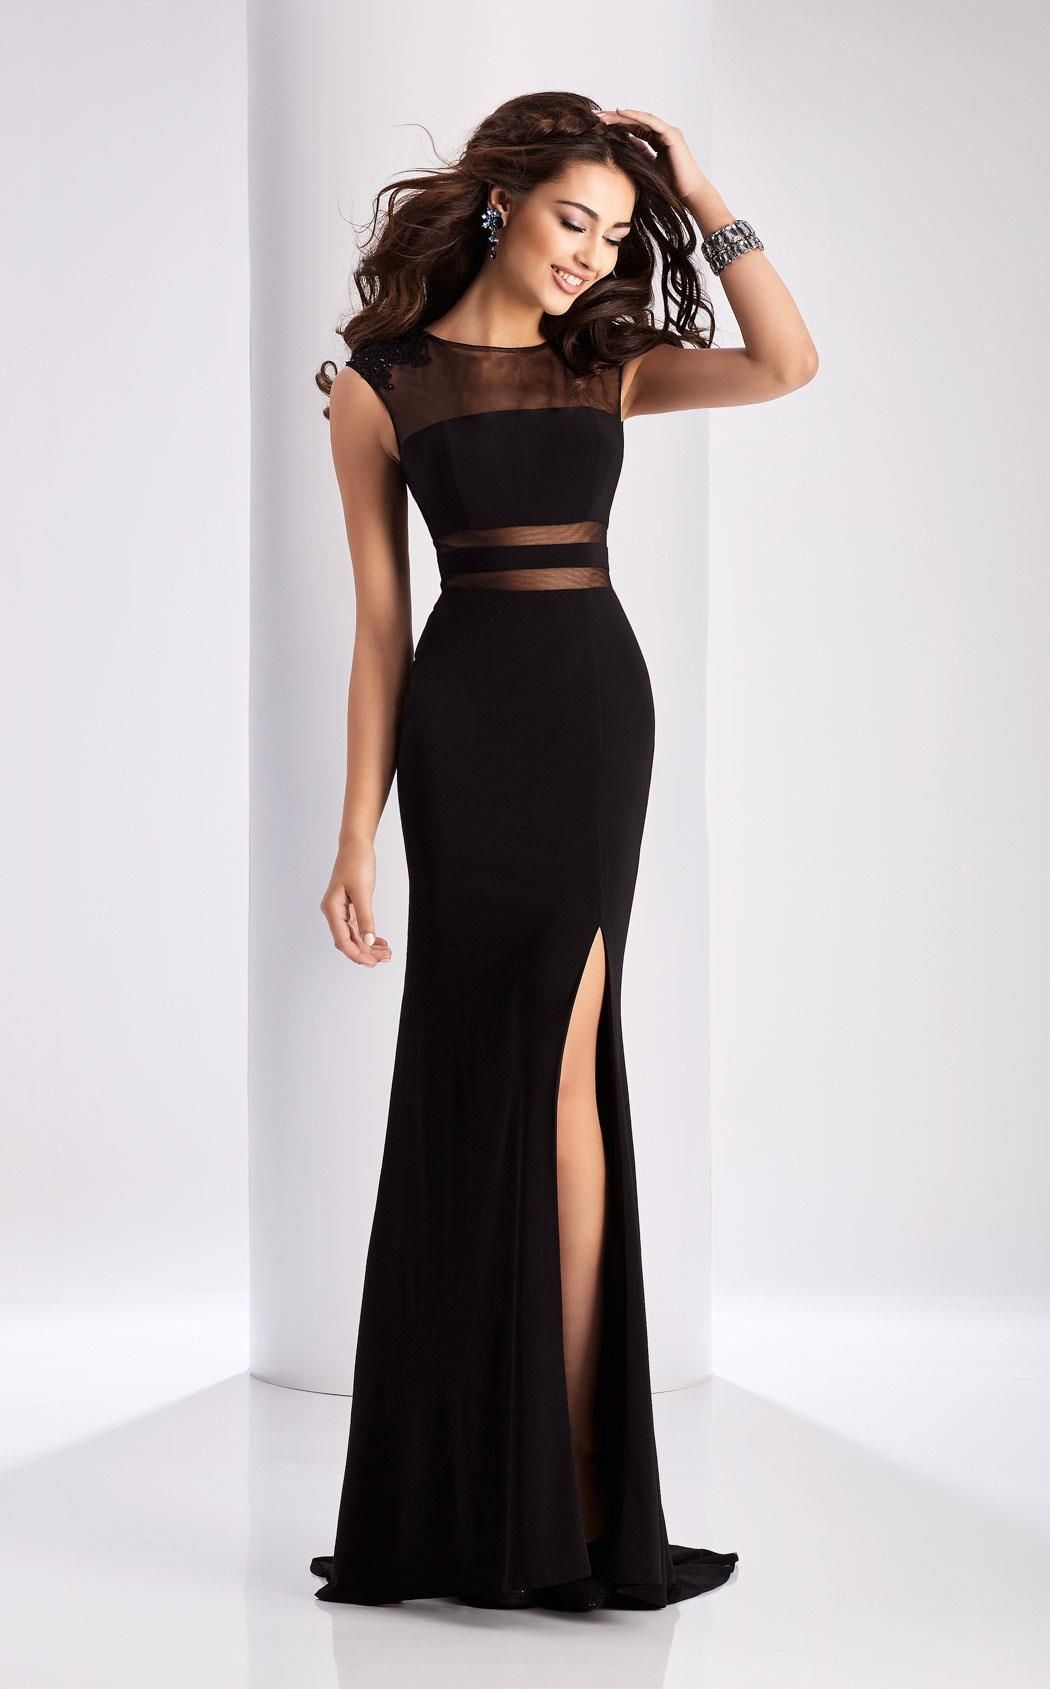 Clarisse occasion wear bodice and formal